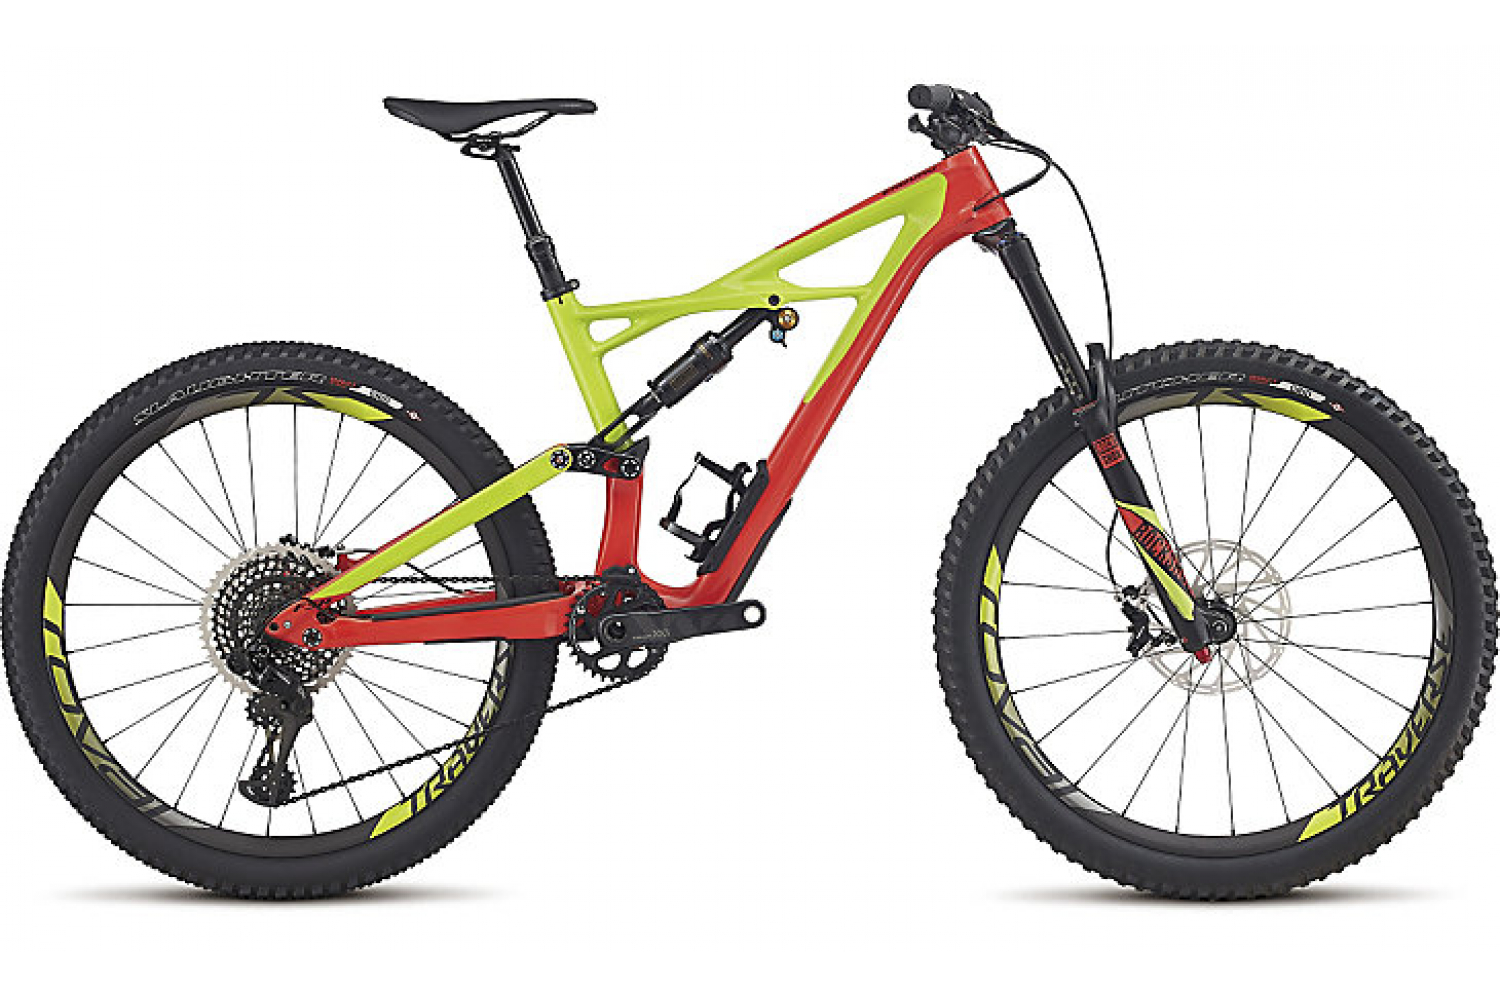 S-WORKS горные велосипеды Specialized S-Works Enduro FSR Carbon 650B 2017 Артикул 97717-0002, 97717-0003, 97717-0004, 97717-0005, 97717-0102, 97717-0103, 97717-0104, 97717-0105